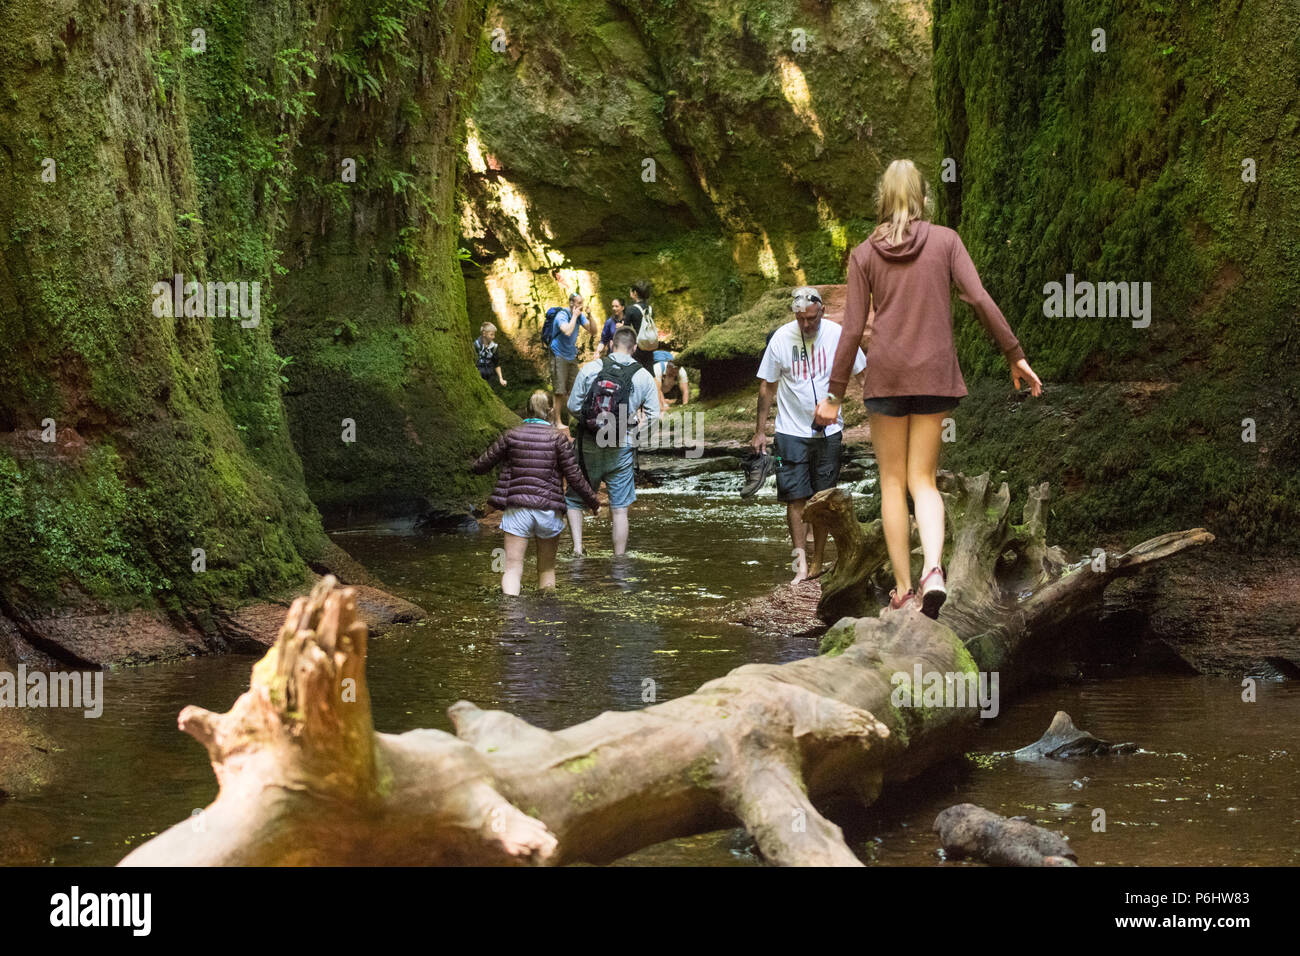 Tourists at Finnich Glen, Stirlingshire, Scotland - a beauty spot coming under increased pressure due to being used as a film location in Outlander - Stock Image